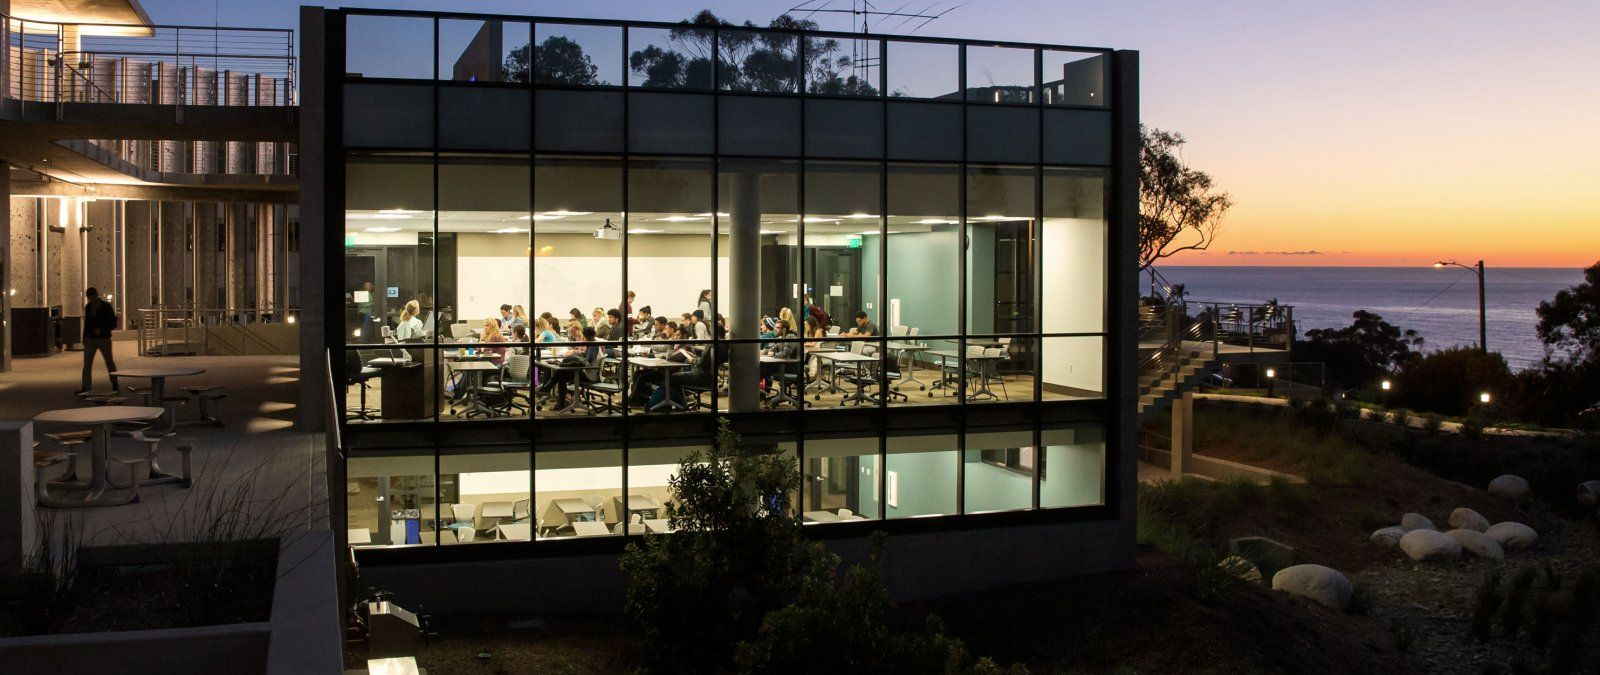 PLNU's Science Building at Dusk